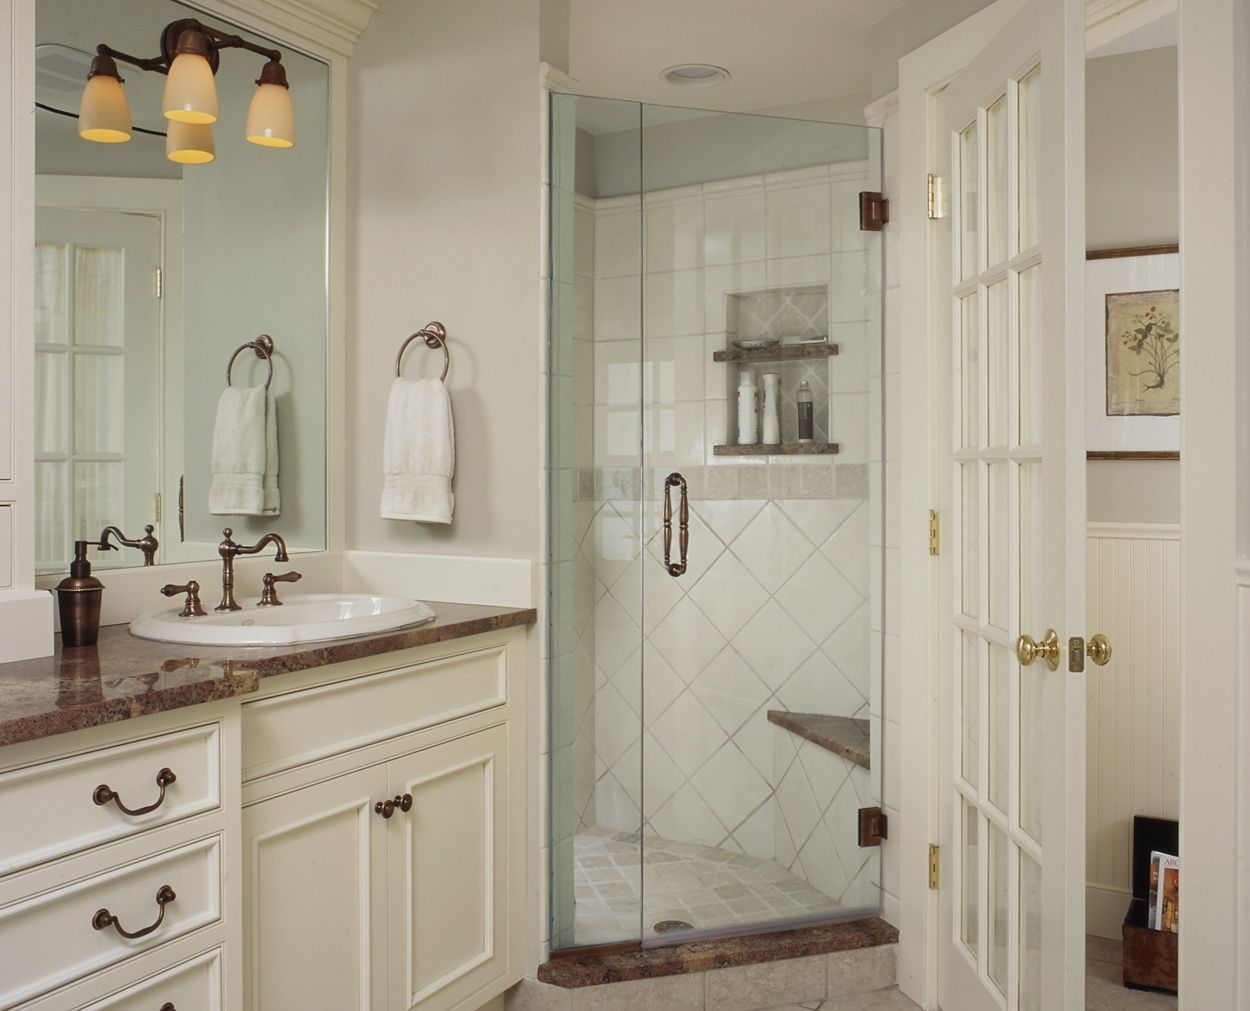 Corner frameless shower, with glass doored toilet room and traditional cabinetry.